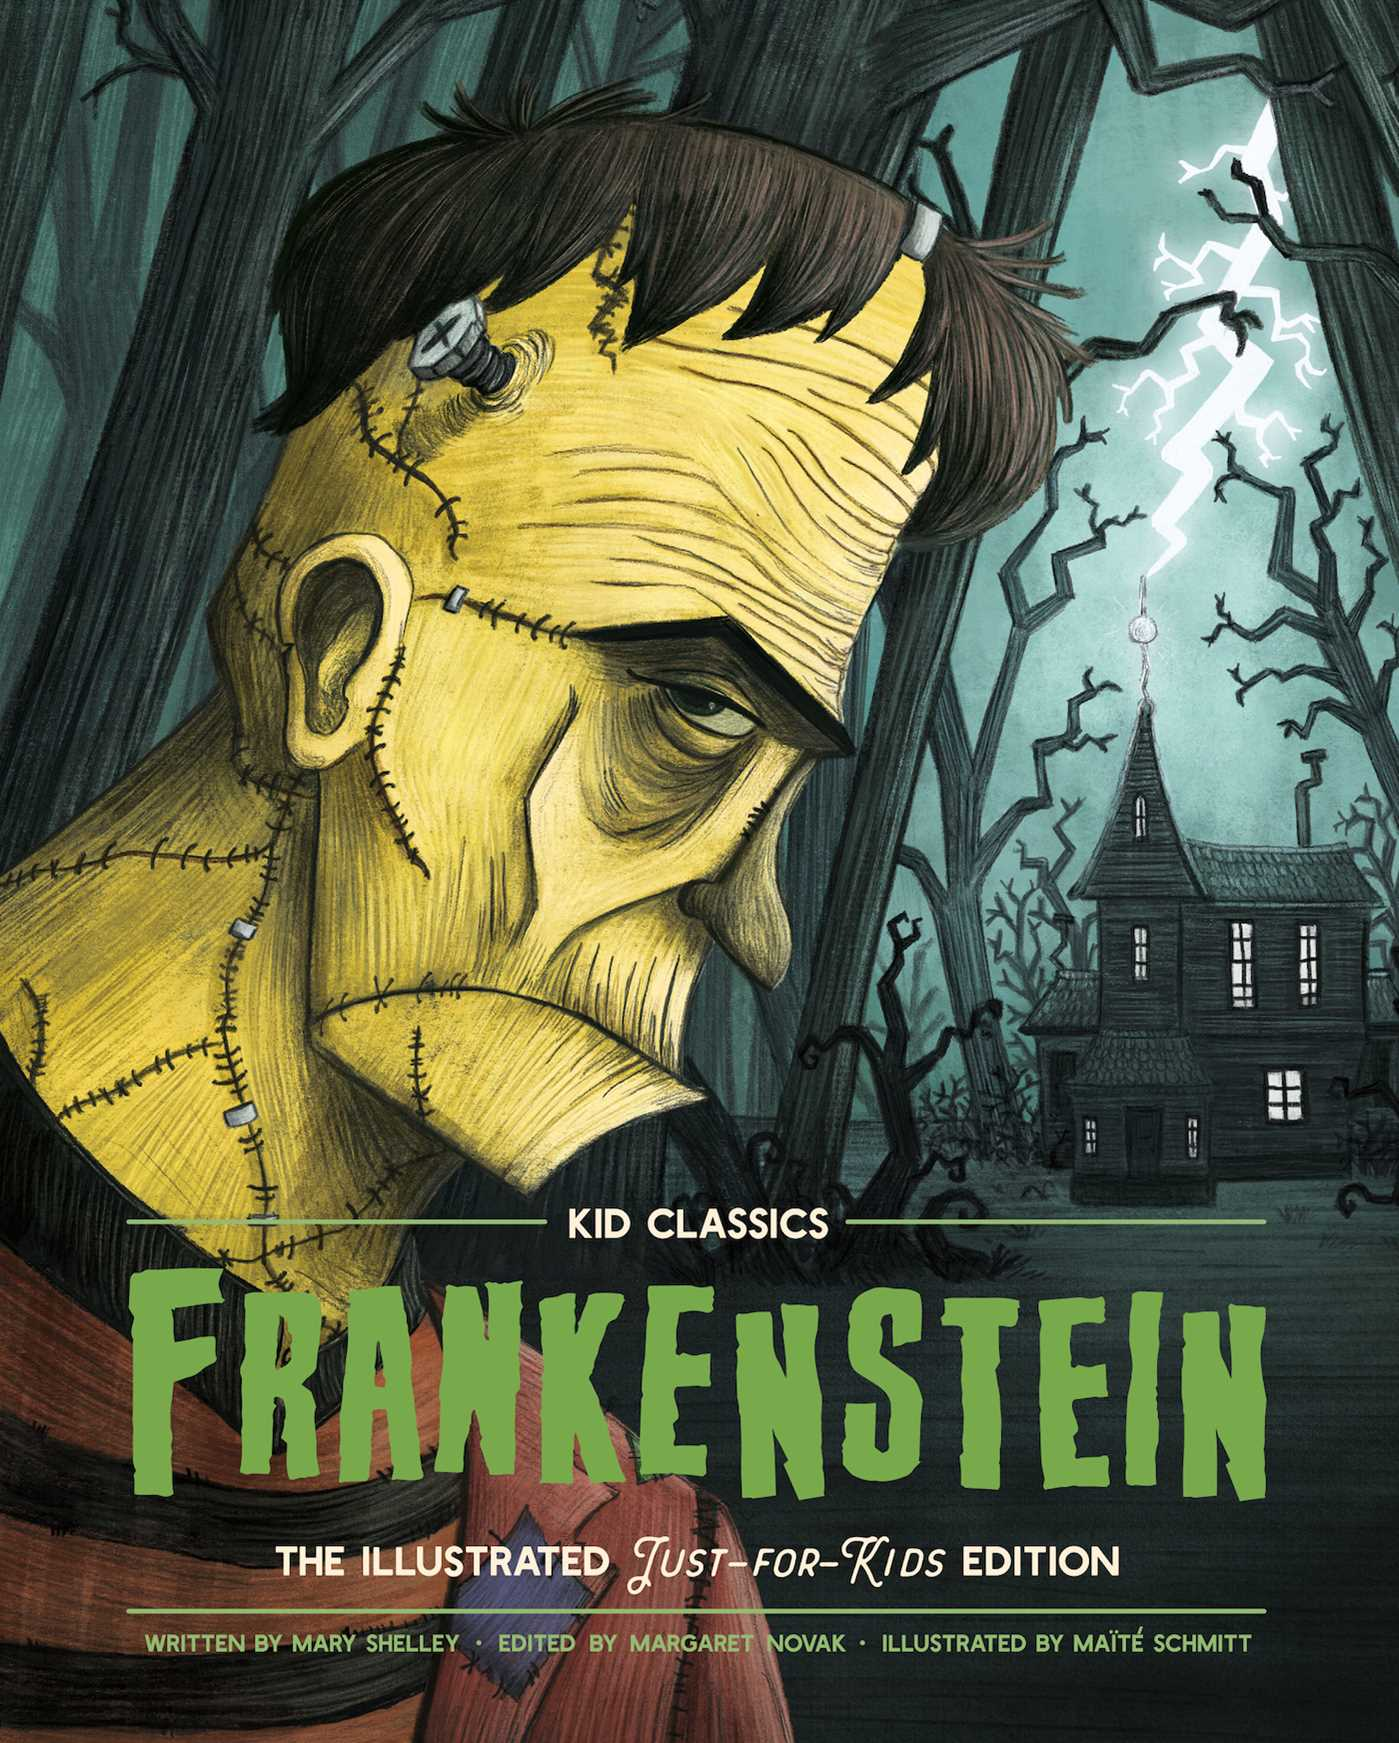 Frankenstein - Kid Classics: The Classic Edition Reimagined Just-for-Kids! (Illustrated Abridged for Grades 4 – 7) (Kid Classic #1)